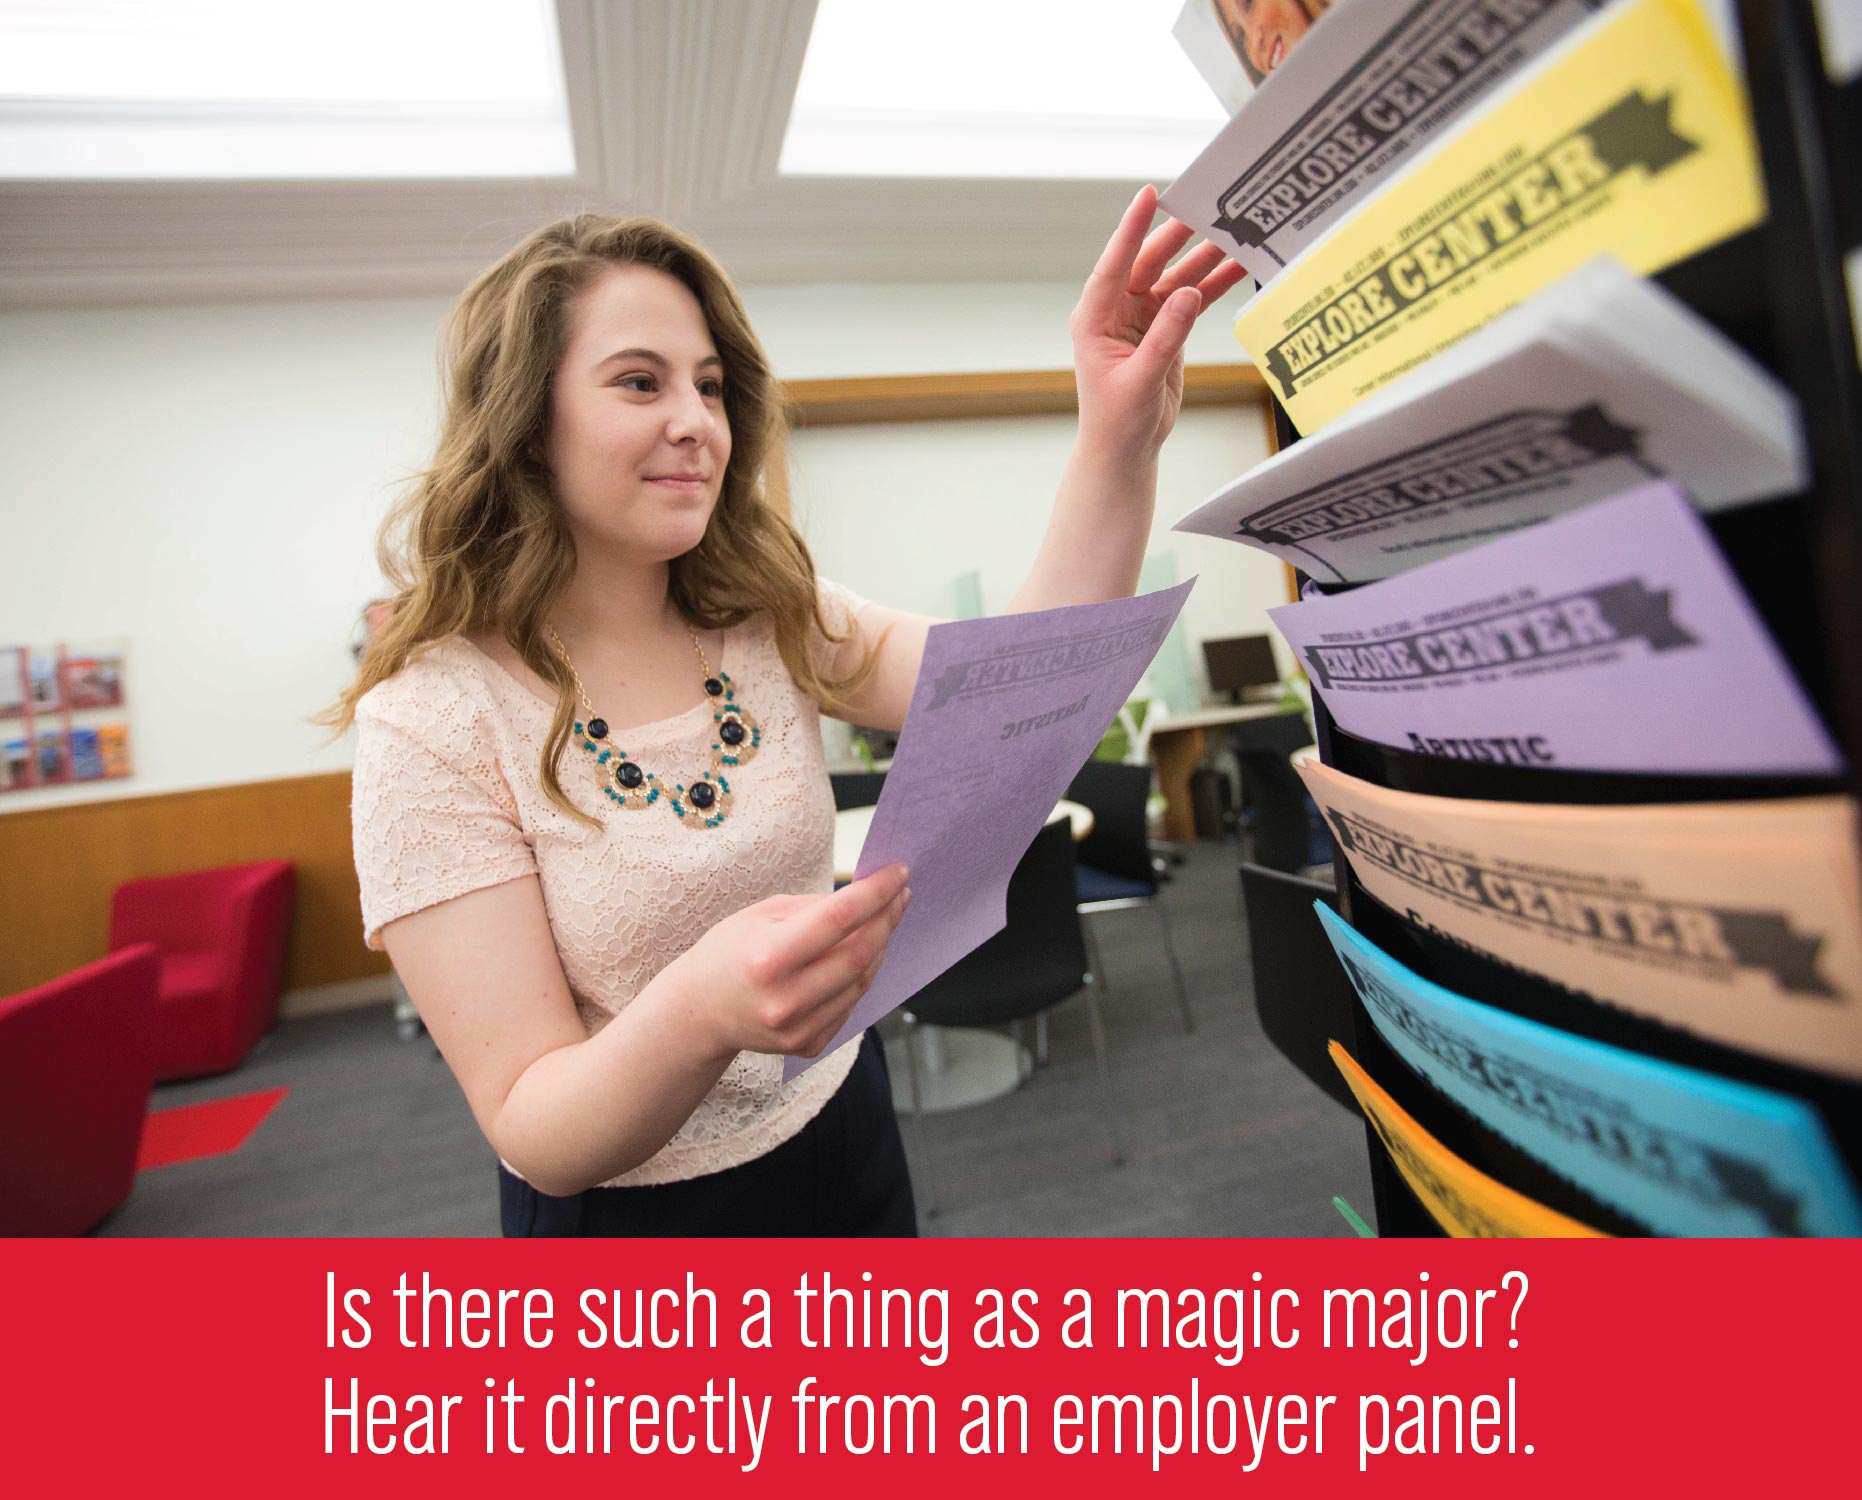 Hear from an employer panel what they look for in applicants.